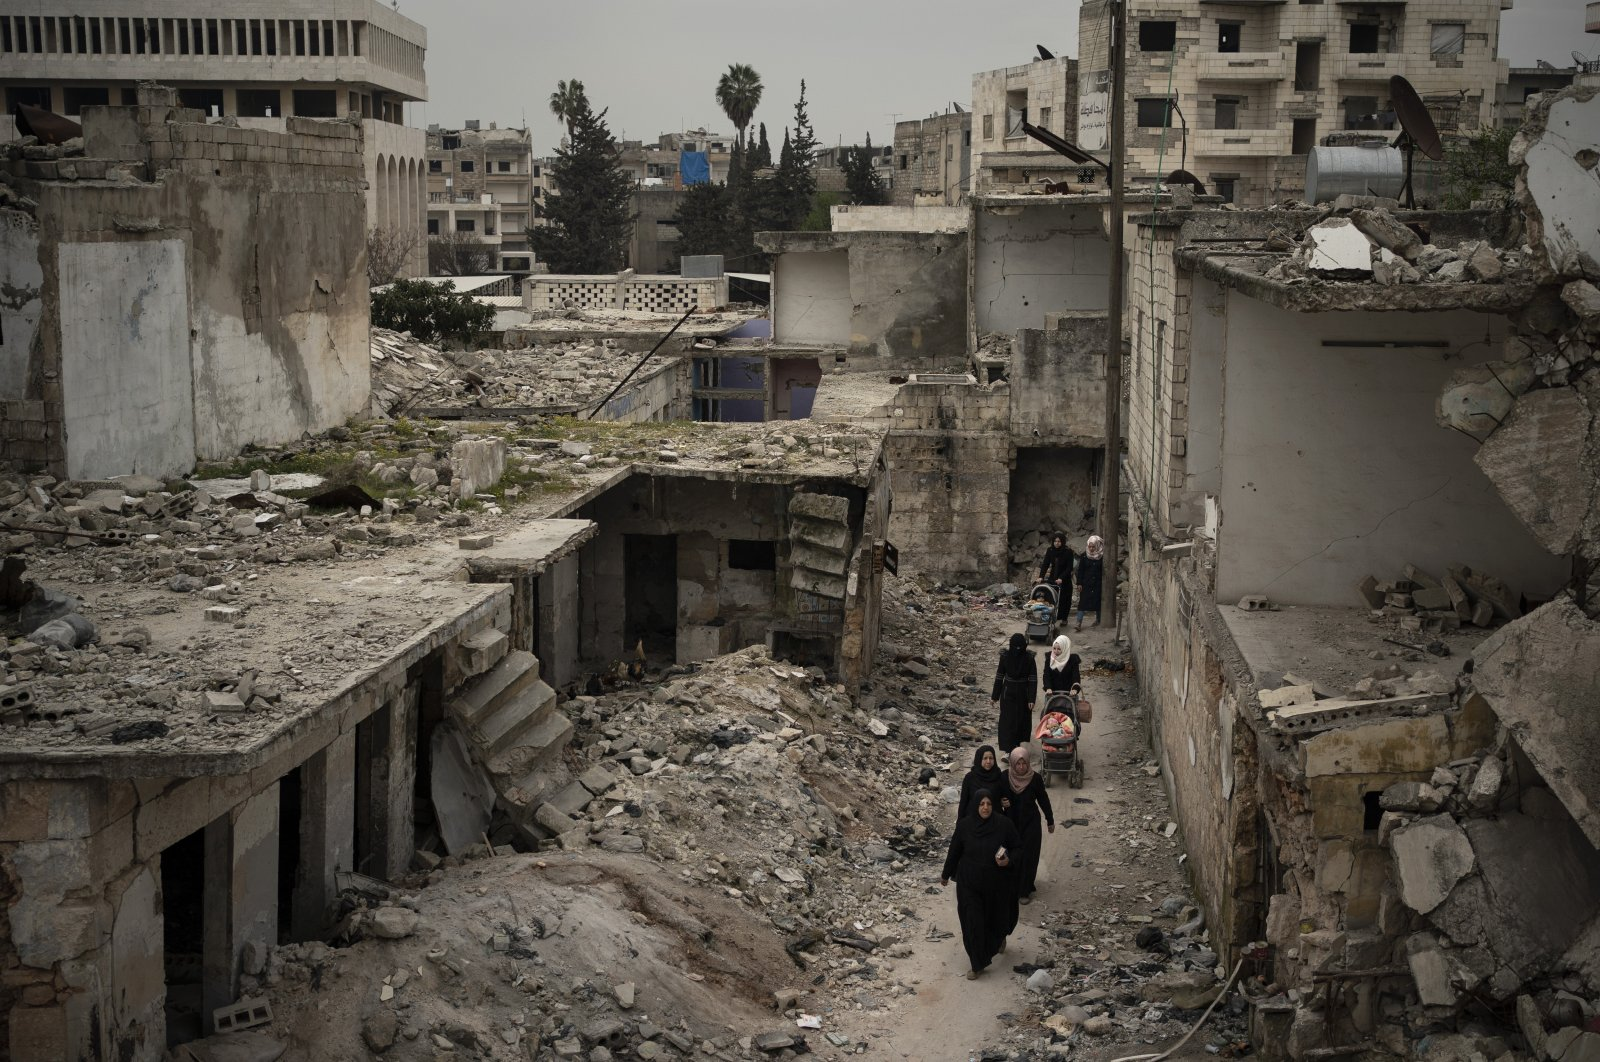 Women walk in a neighborhood heavily damaged by airstrikes in Idlib, Syria, March 12, 2020. (AP File Photo)